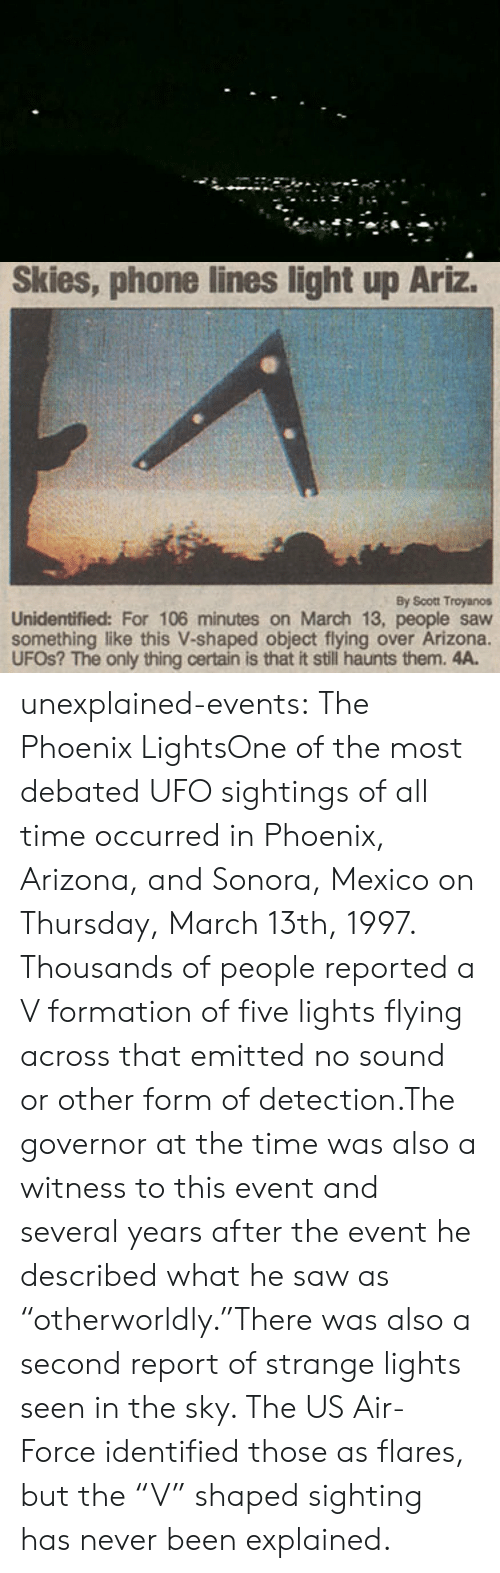 "the event: Skies, phone lines light up Ariz.  By Scott Troyanos  Unidentified: For 106 minutes on March 13, people saw  something like this V-shaped object flying over Arizona.  UFOS? The only thing certain is that it still haunts them. 4A. unexplained-events:  The Phoenix LightsOne of the most debated UFO sightings of all time occurred in Phoenix, Arizona, and Sonora, Mexico on Thursday, March 13th, 1997. Thousands of people reported a V formation of five lights flying across that emitted no sound or other form of detection.The governor at the time was also a witness to this event and several years after the event he described what he saw as   ""otherworldly.""There was also a second report of strange lights seen in the sky. The US Air-Force identified those as flares, but the ""V"" shaped sighting has never been explained."